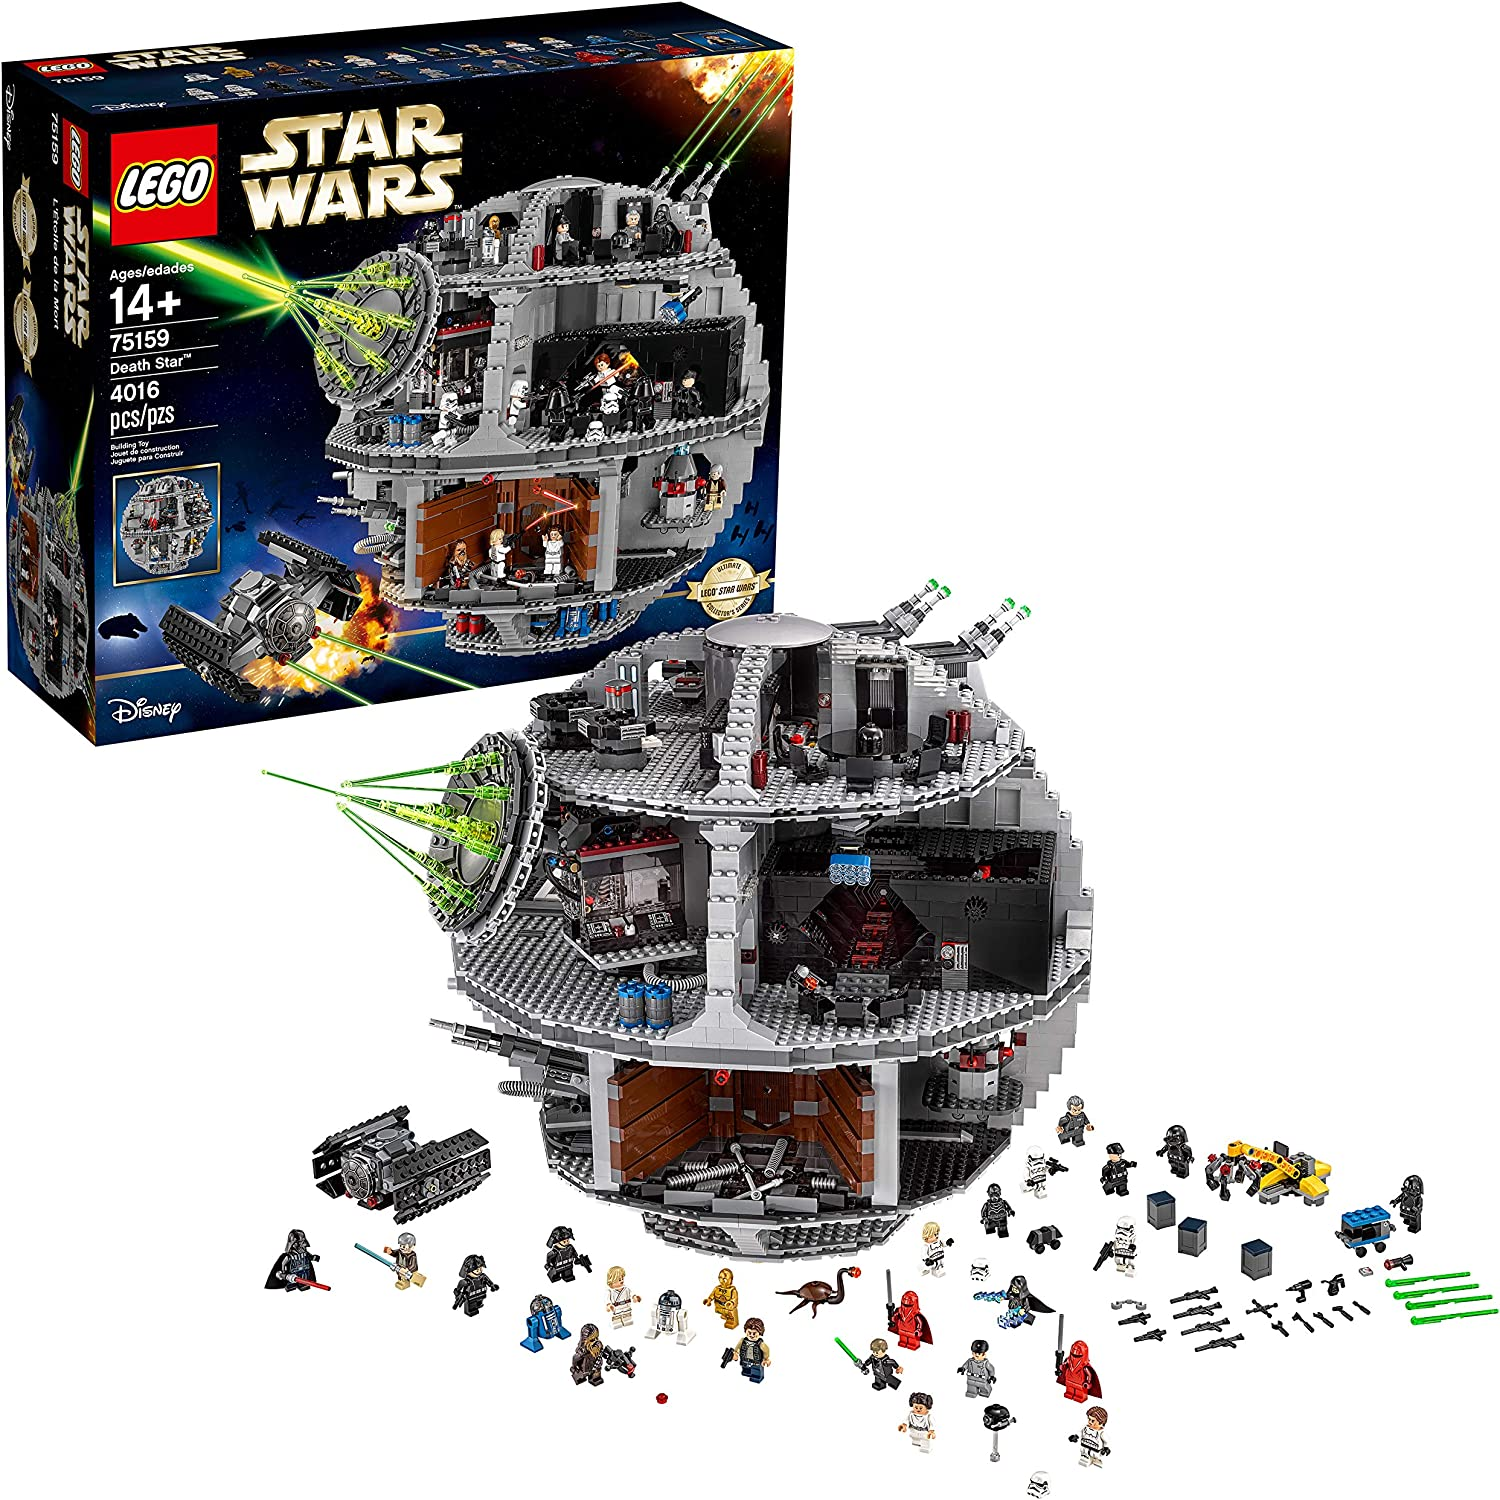 The Galactic Empire Throne Room Roblox Amazon Com Lego Star Wars Death Star 75159 Space Station Building Kit With Star Wars Minifigures For Kids And Adults 4 016 Pieces Toys Games